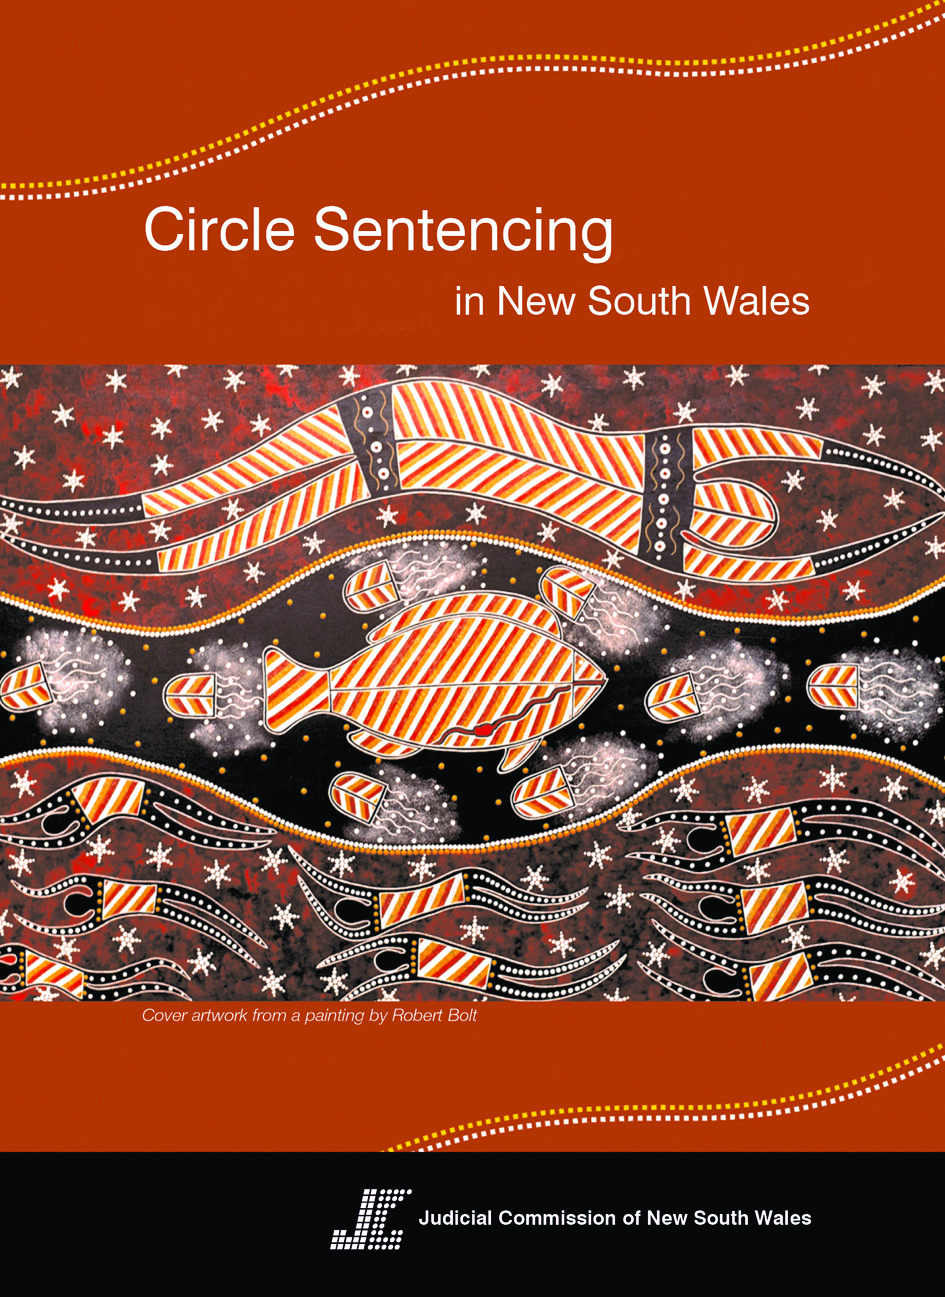 Circle Sentencing in New South Wales